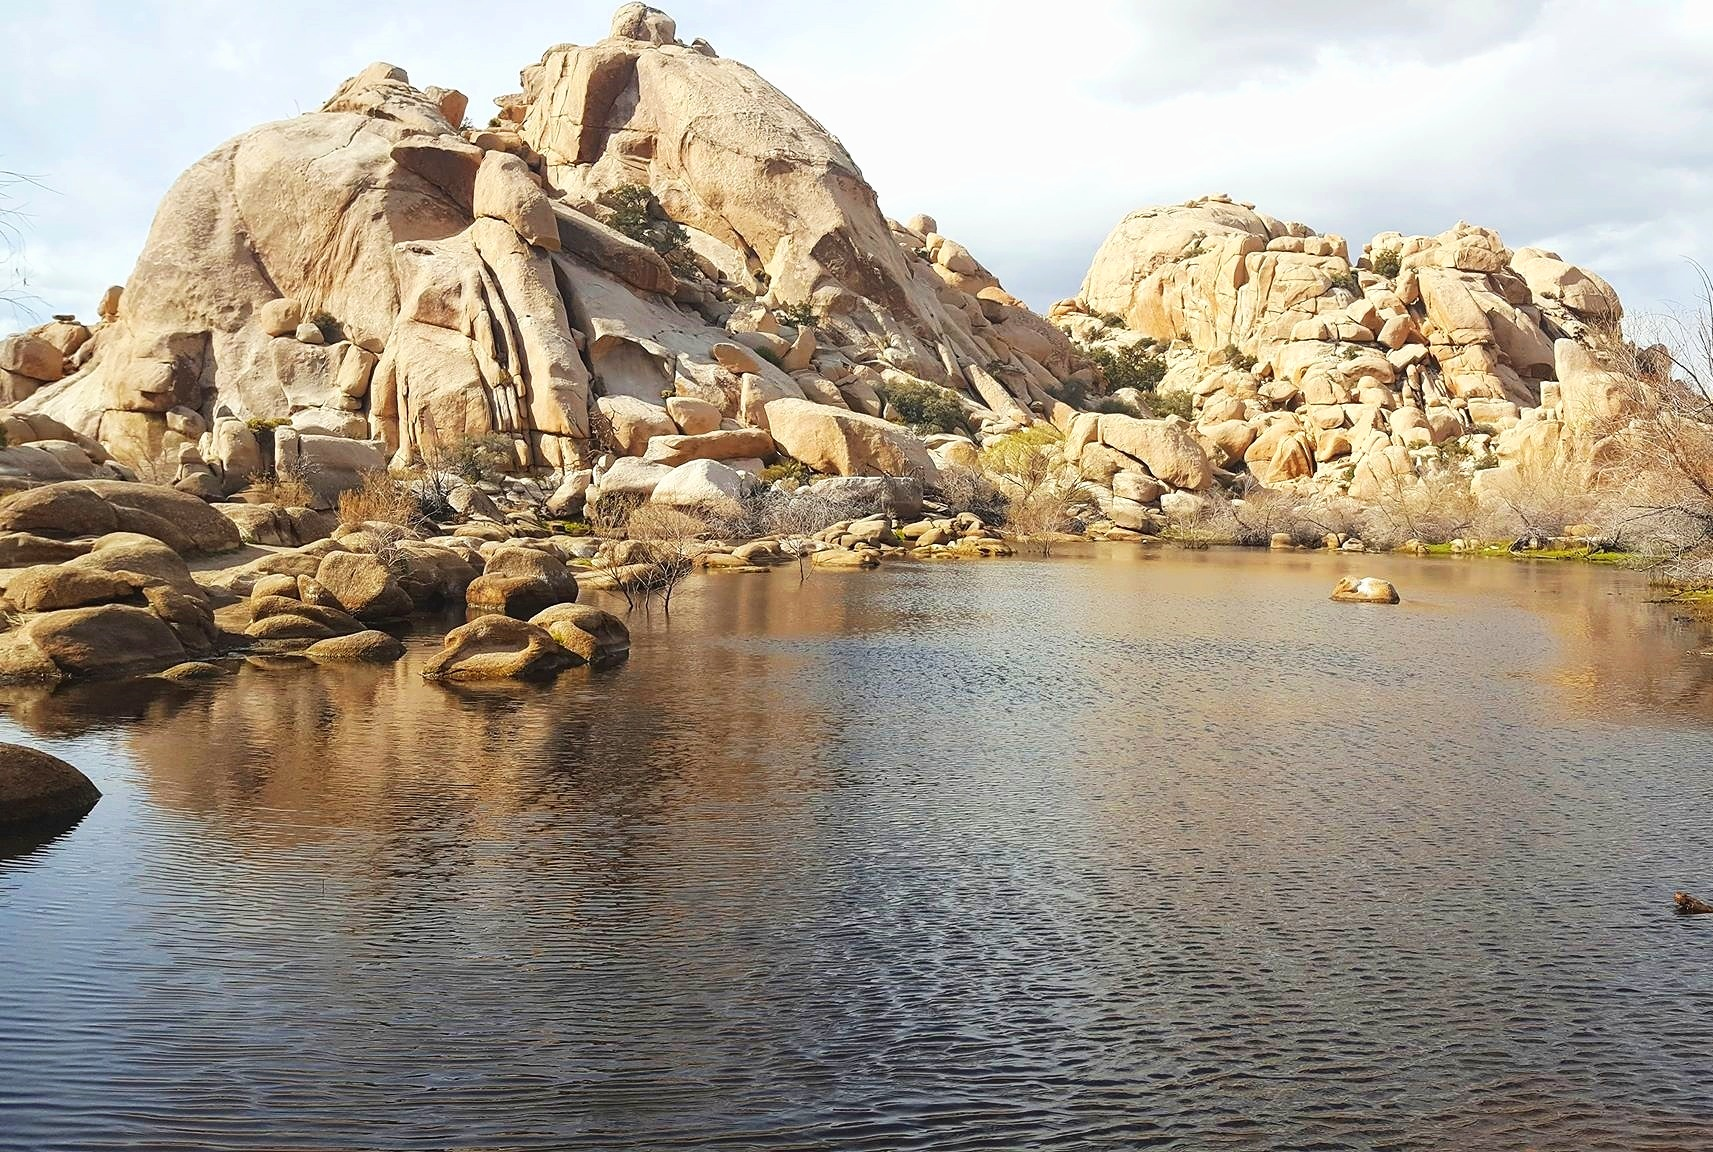 One Day Road Trip in Joshua Tree National Park